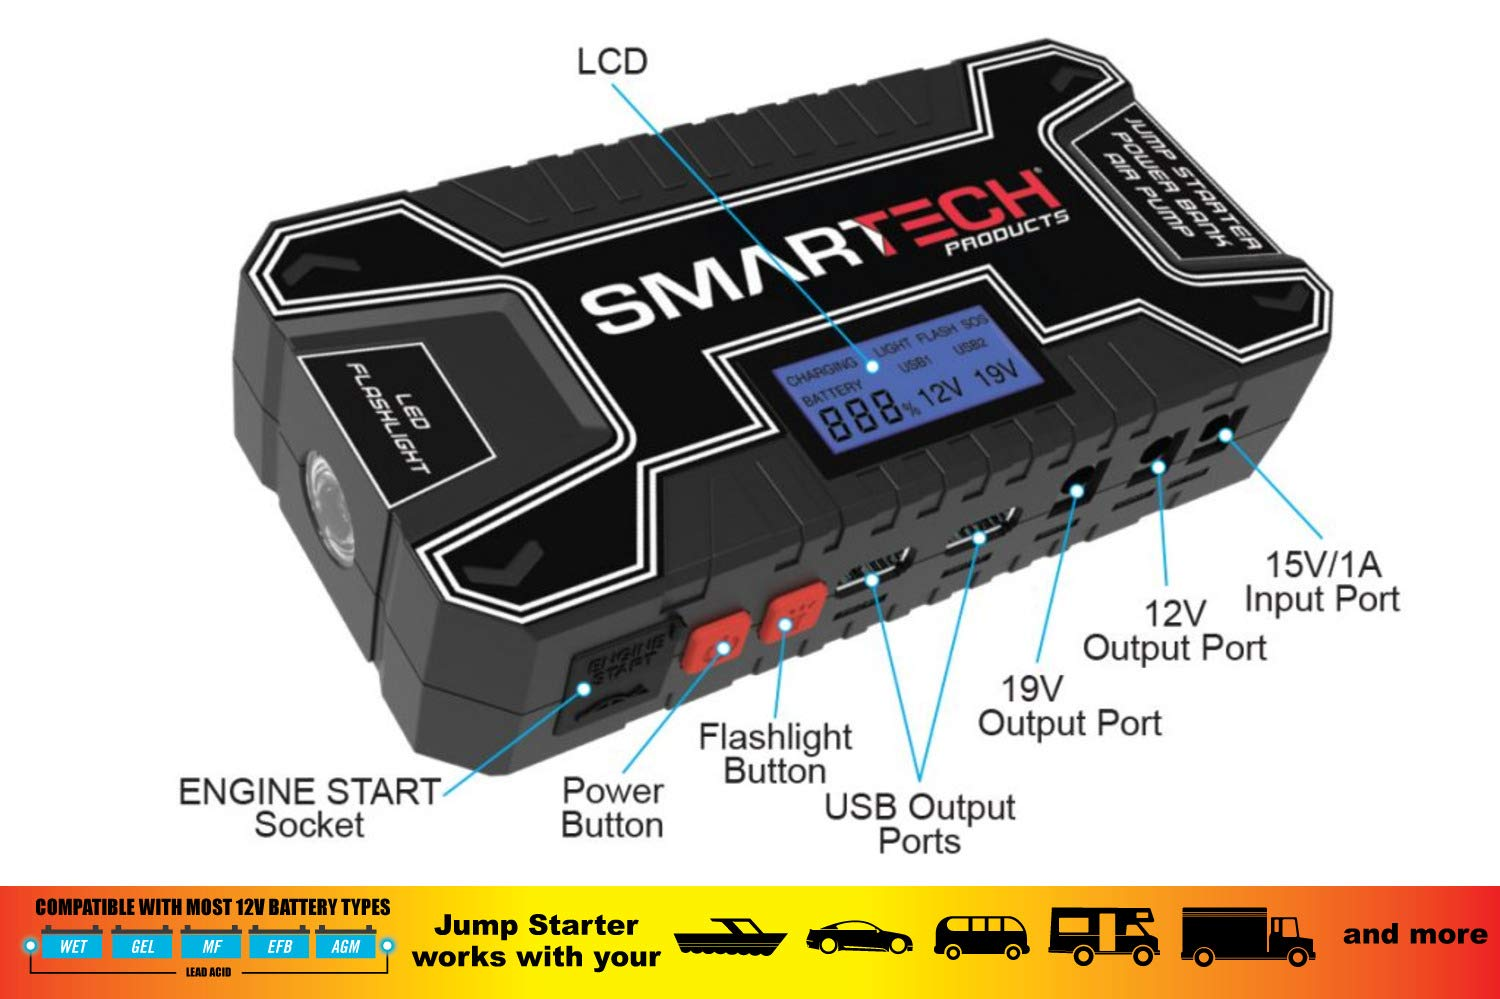 Smartech Power Kit 12000mAh Lithium 12v Battery 500 Amp Car Jump starter 150 PSI Air Pump Tire Inflator Portable Jump Starter with Air Compressor – Perfect Automotive Roadside Emergency Kit